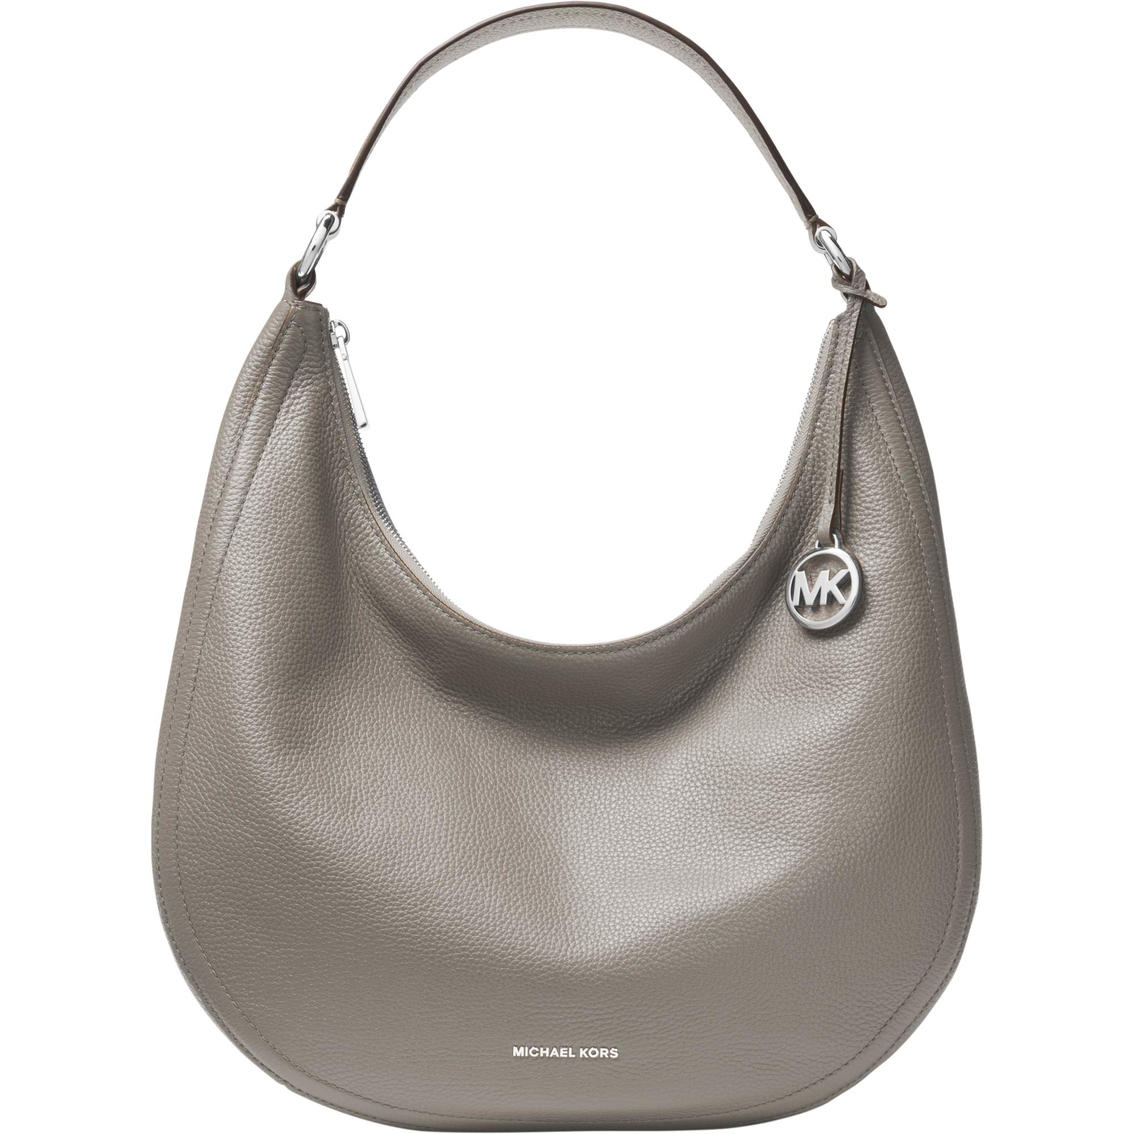 70008d09a66b Michael Kors Lydia Large Hobo Leather Shoulder Bag | Hobo Bags ...